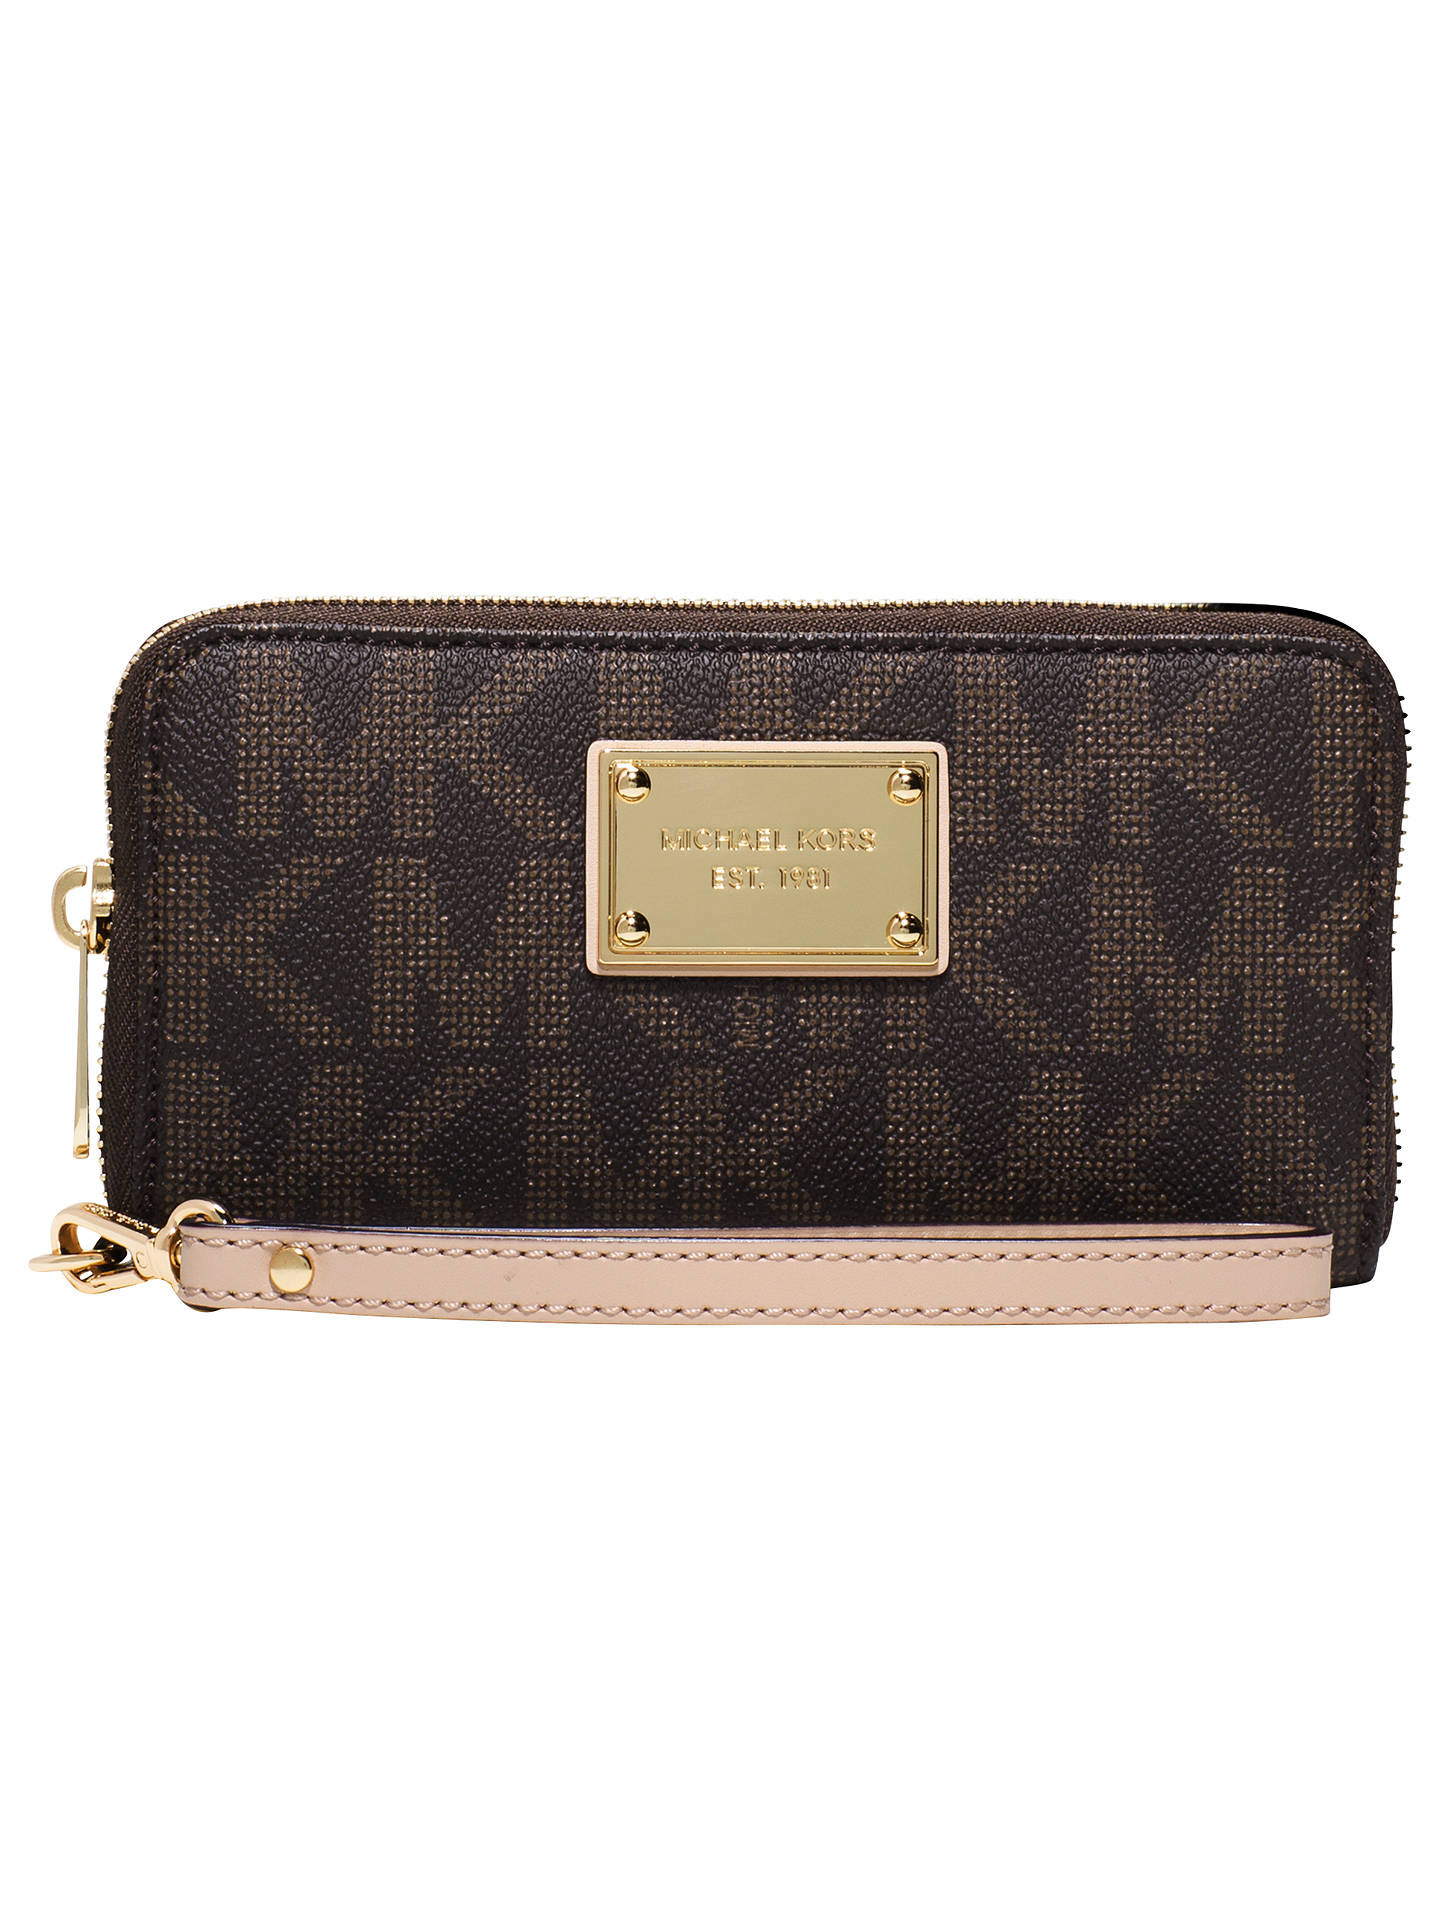 baa46d837d3123 Buy MICHAEL Michael Kors Jet Set Travel Large Smartphone Wristlet, Brown  Online at johnlewis.